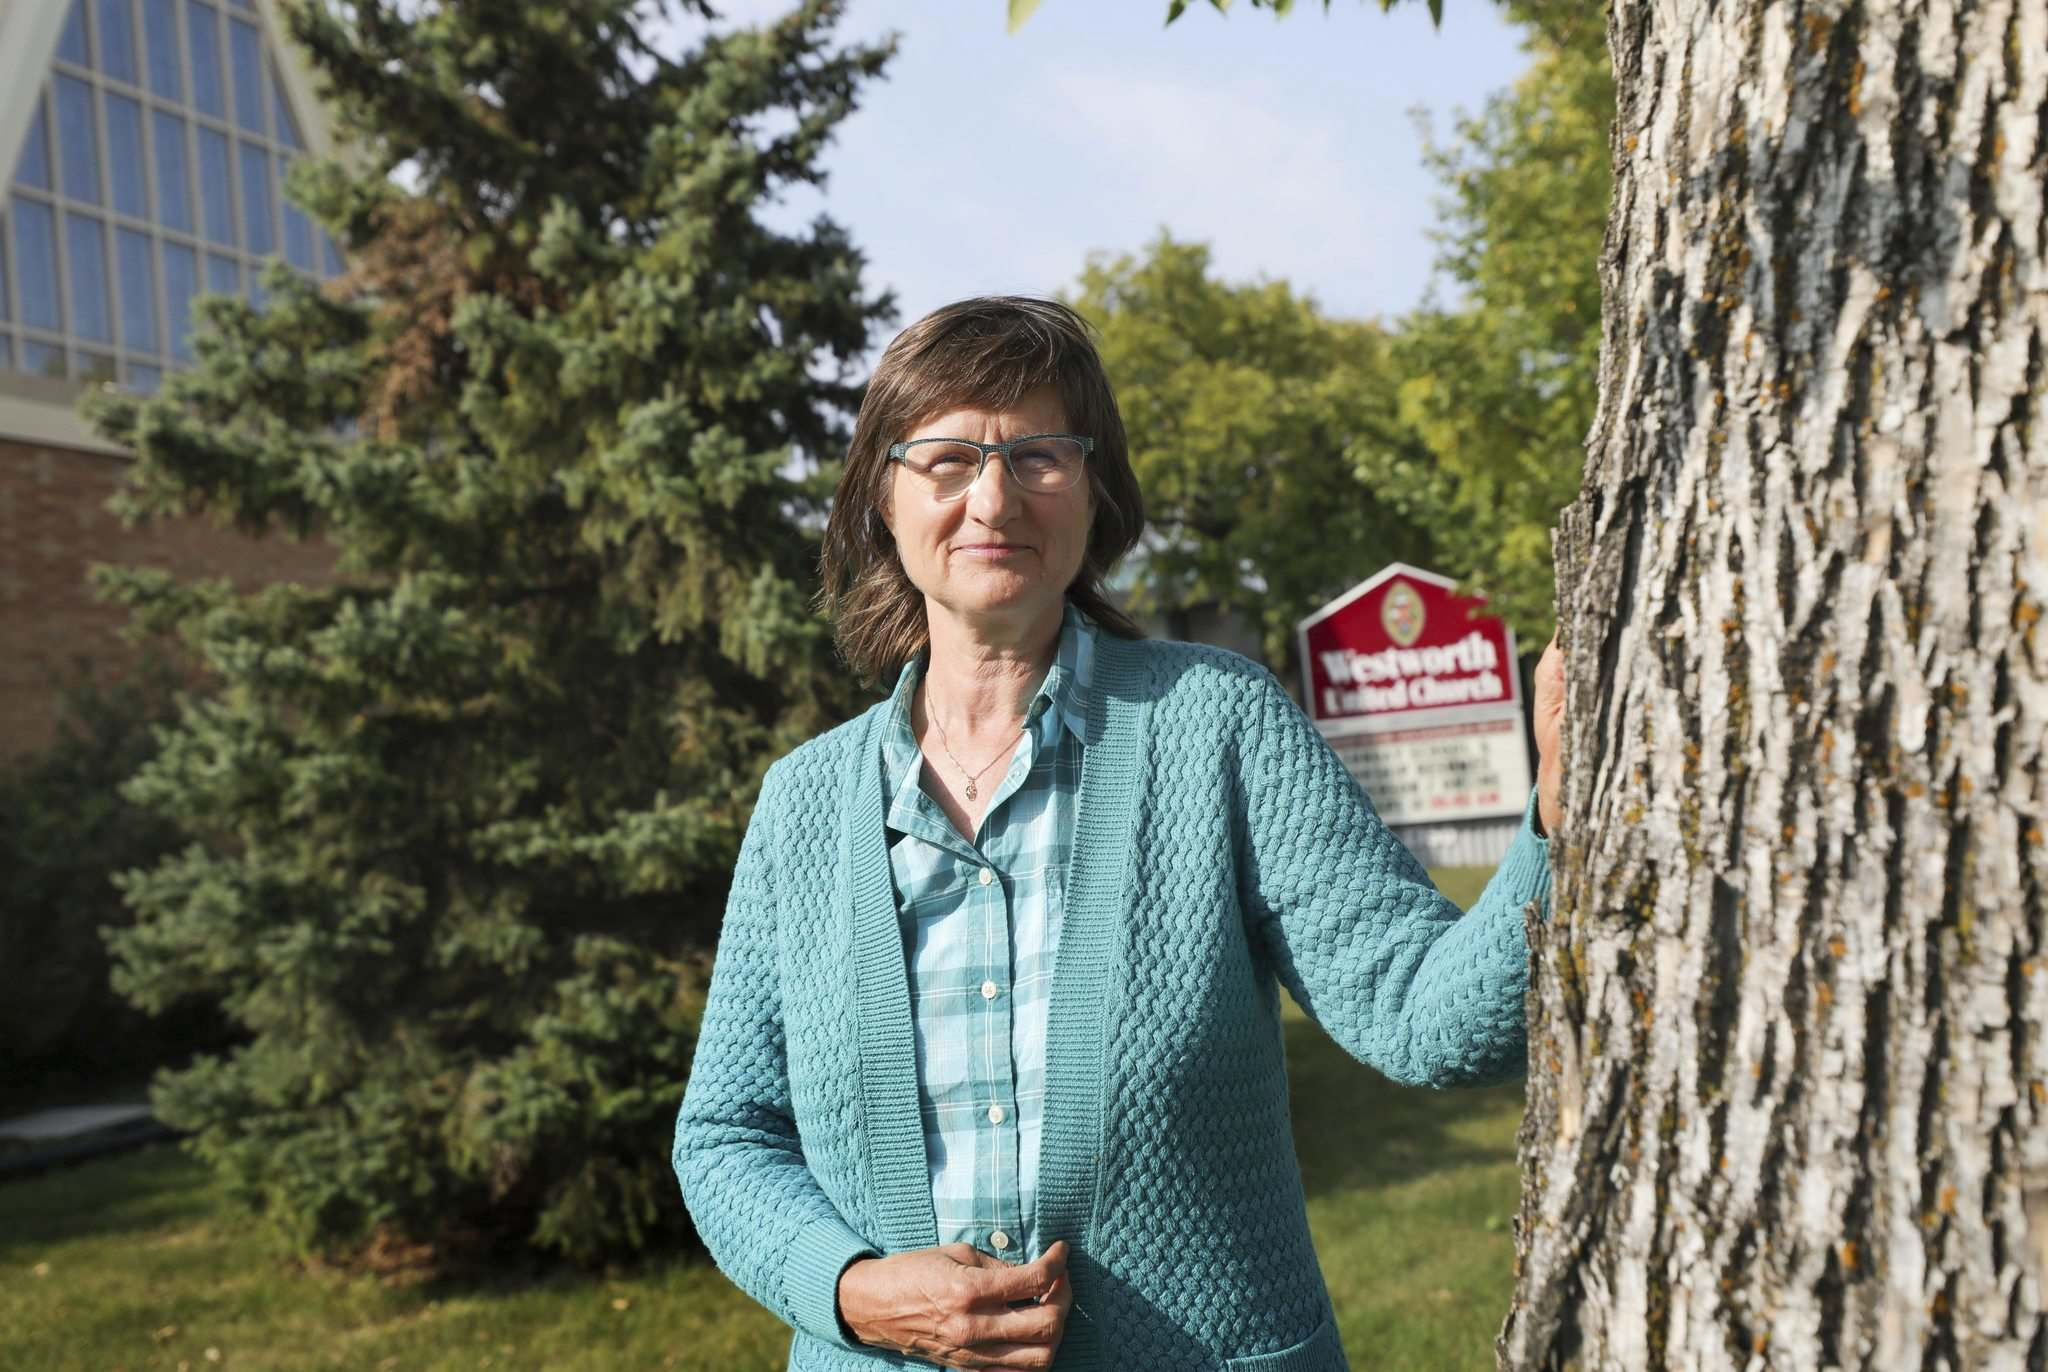 RUTH BONNEVILLE / WINNIPEG FREE PRESS</p><p>FAITH - United Church vigil for Universal Basic Income.</p><p>Portraits of Loraine McKenzie Shepherd, minister at Westworth United Church, outside her church on Friday. Loraine McKenzie Shepherd is organizing a prayer vigil outside the office of MP Dan Vandal on Tuesday, Sept. 22, 12:30 PM.</p><p>Story to run in advance of the Speech from the Throne in support of Universal Basic Income which is part of a cross-Canada United Church of Canada call to action on this issue.</p><p>See Story by John Longhurst</p></p><p>Sept 18th, 2020</p>